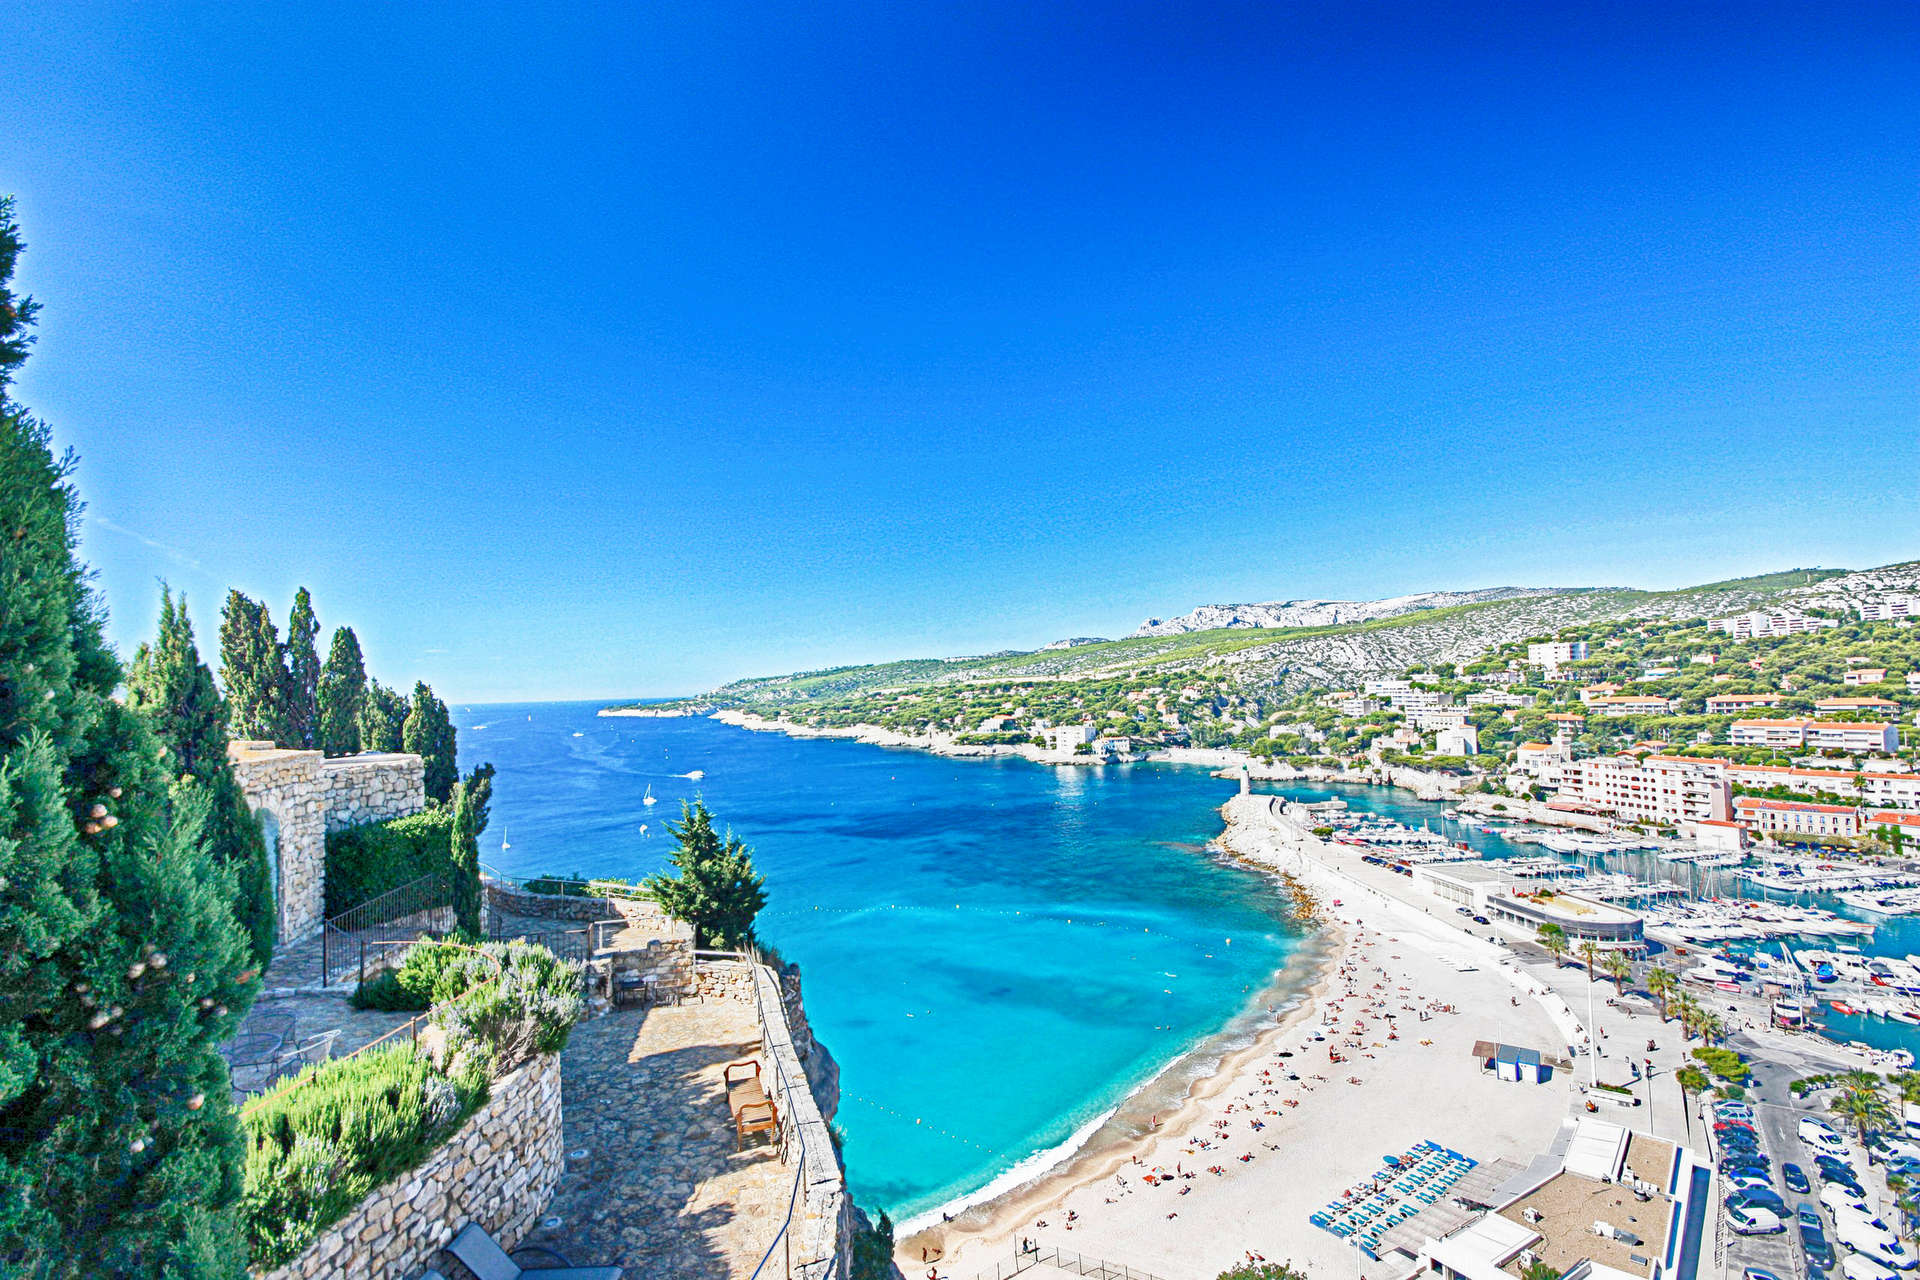 Luxury vacation rentals europe - France - Provence - Cassis - Chateau de Cassis - Image 1/32